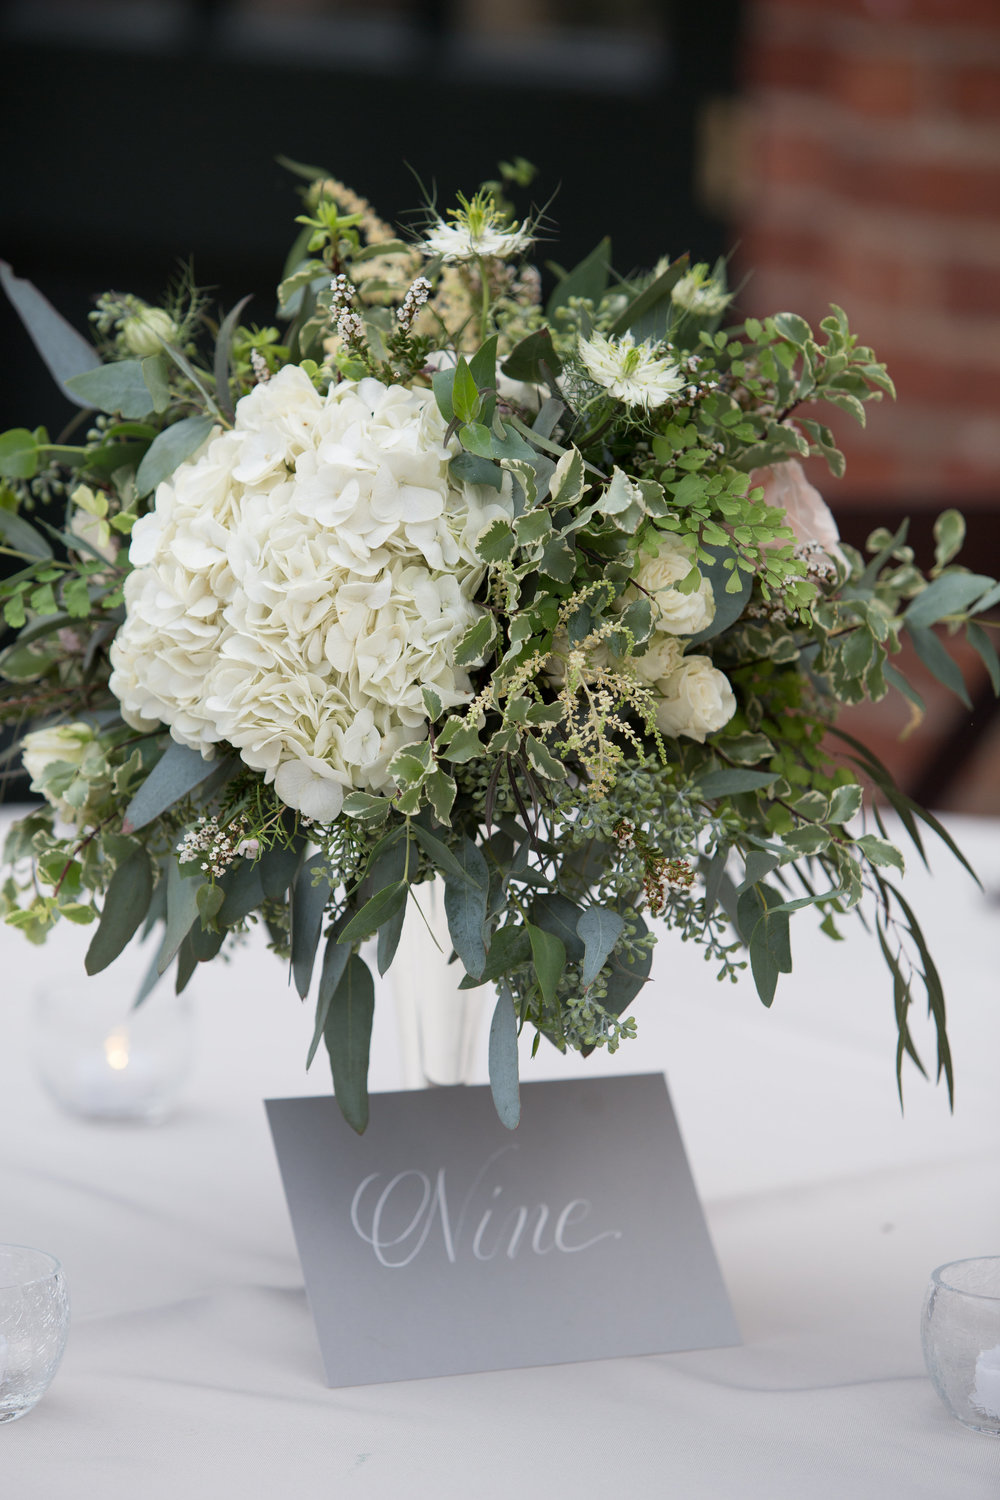 Hydrangea, garden roses, and organic greenery centerpiece